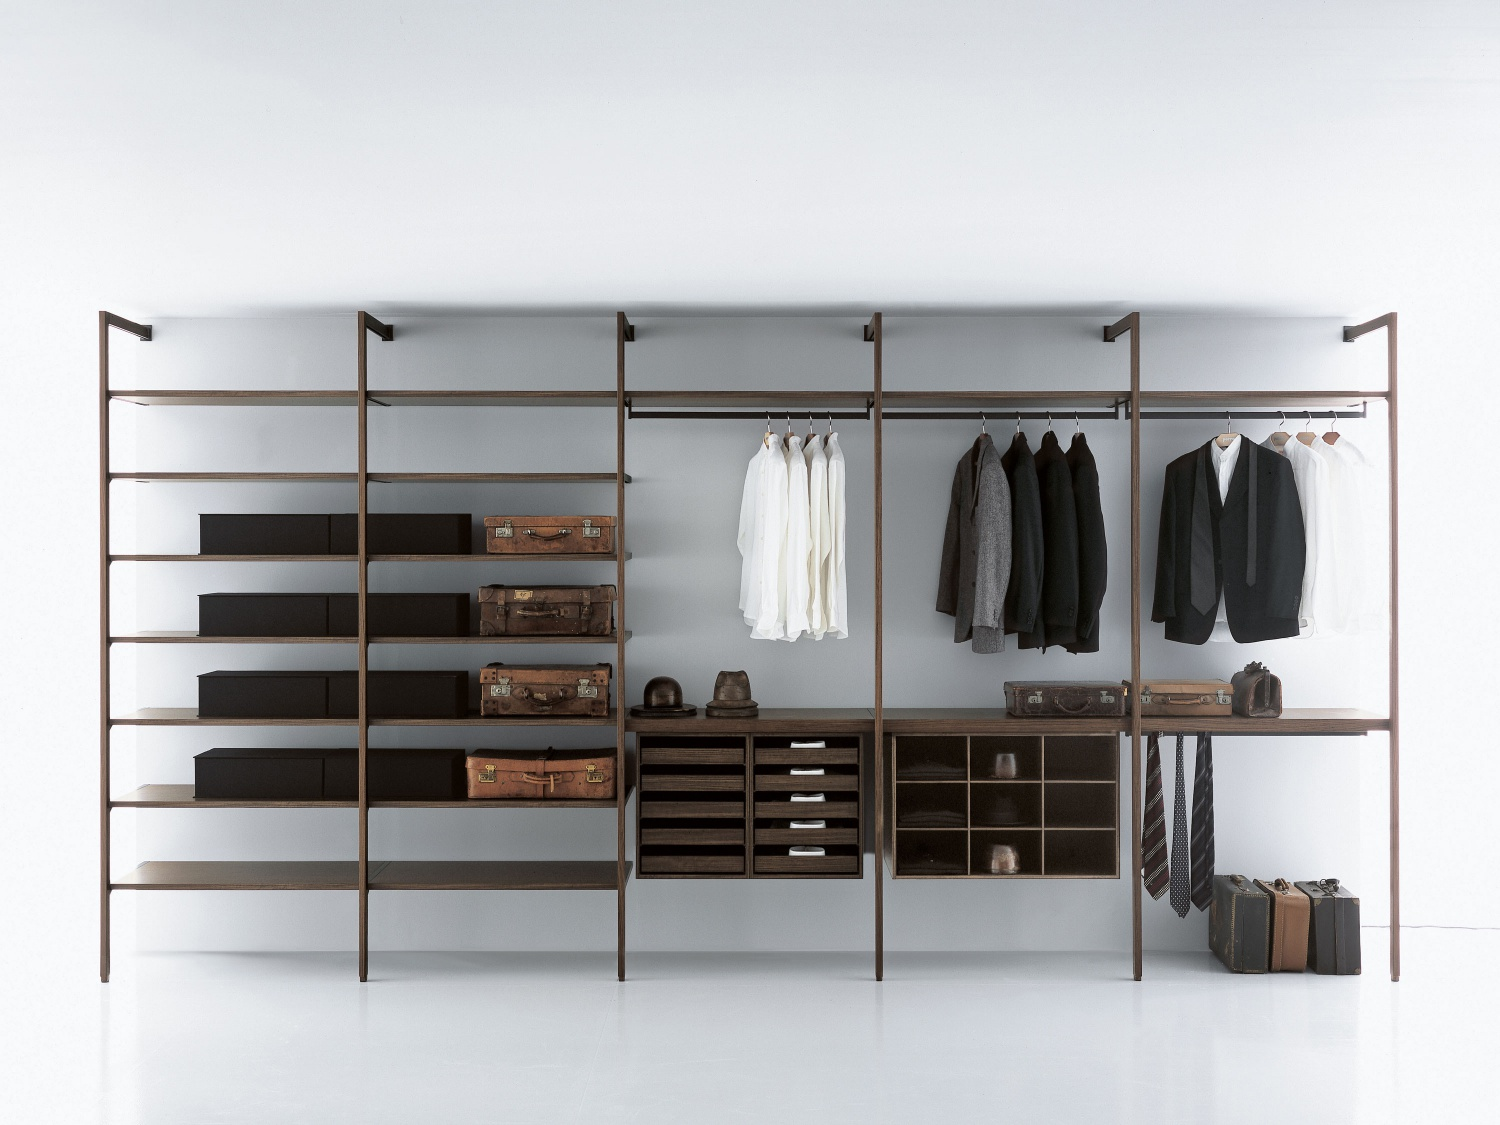 Porro Spa | Prodotti | Sistemi | Cabina armadio / Walk-in closet